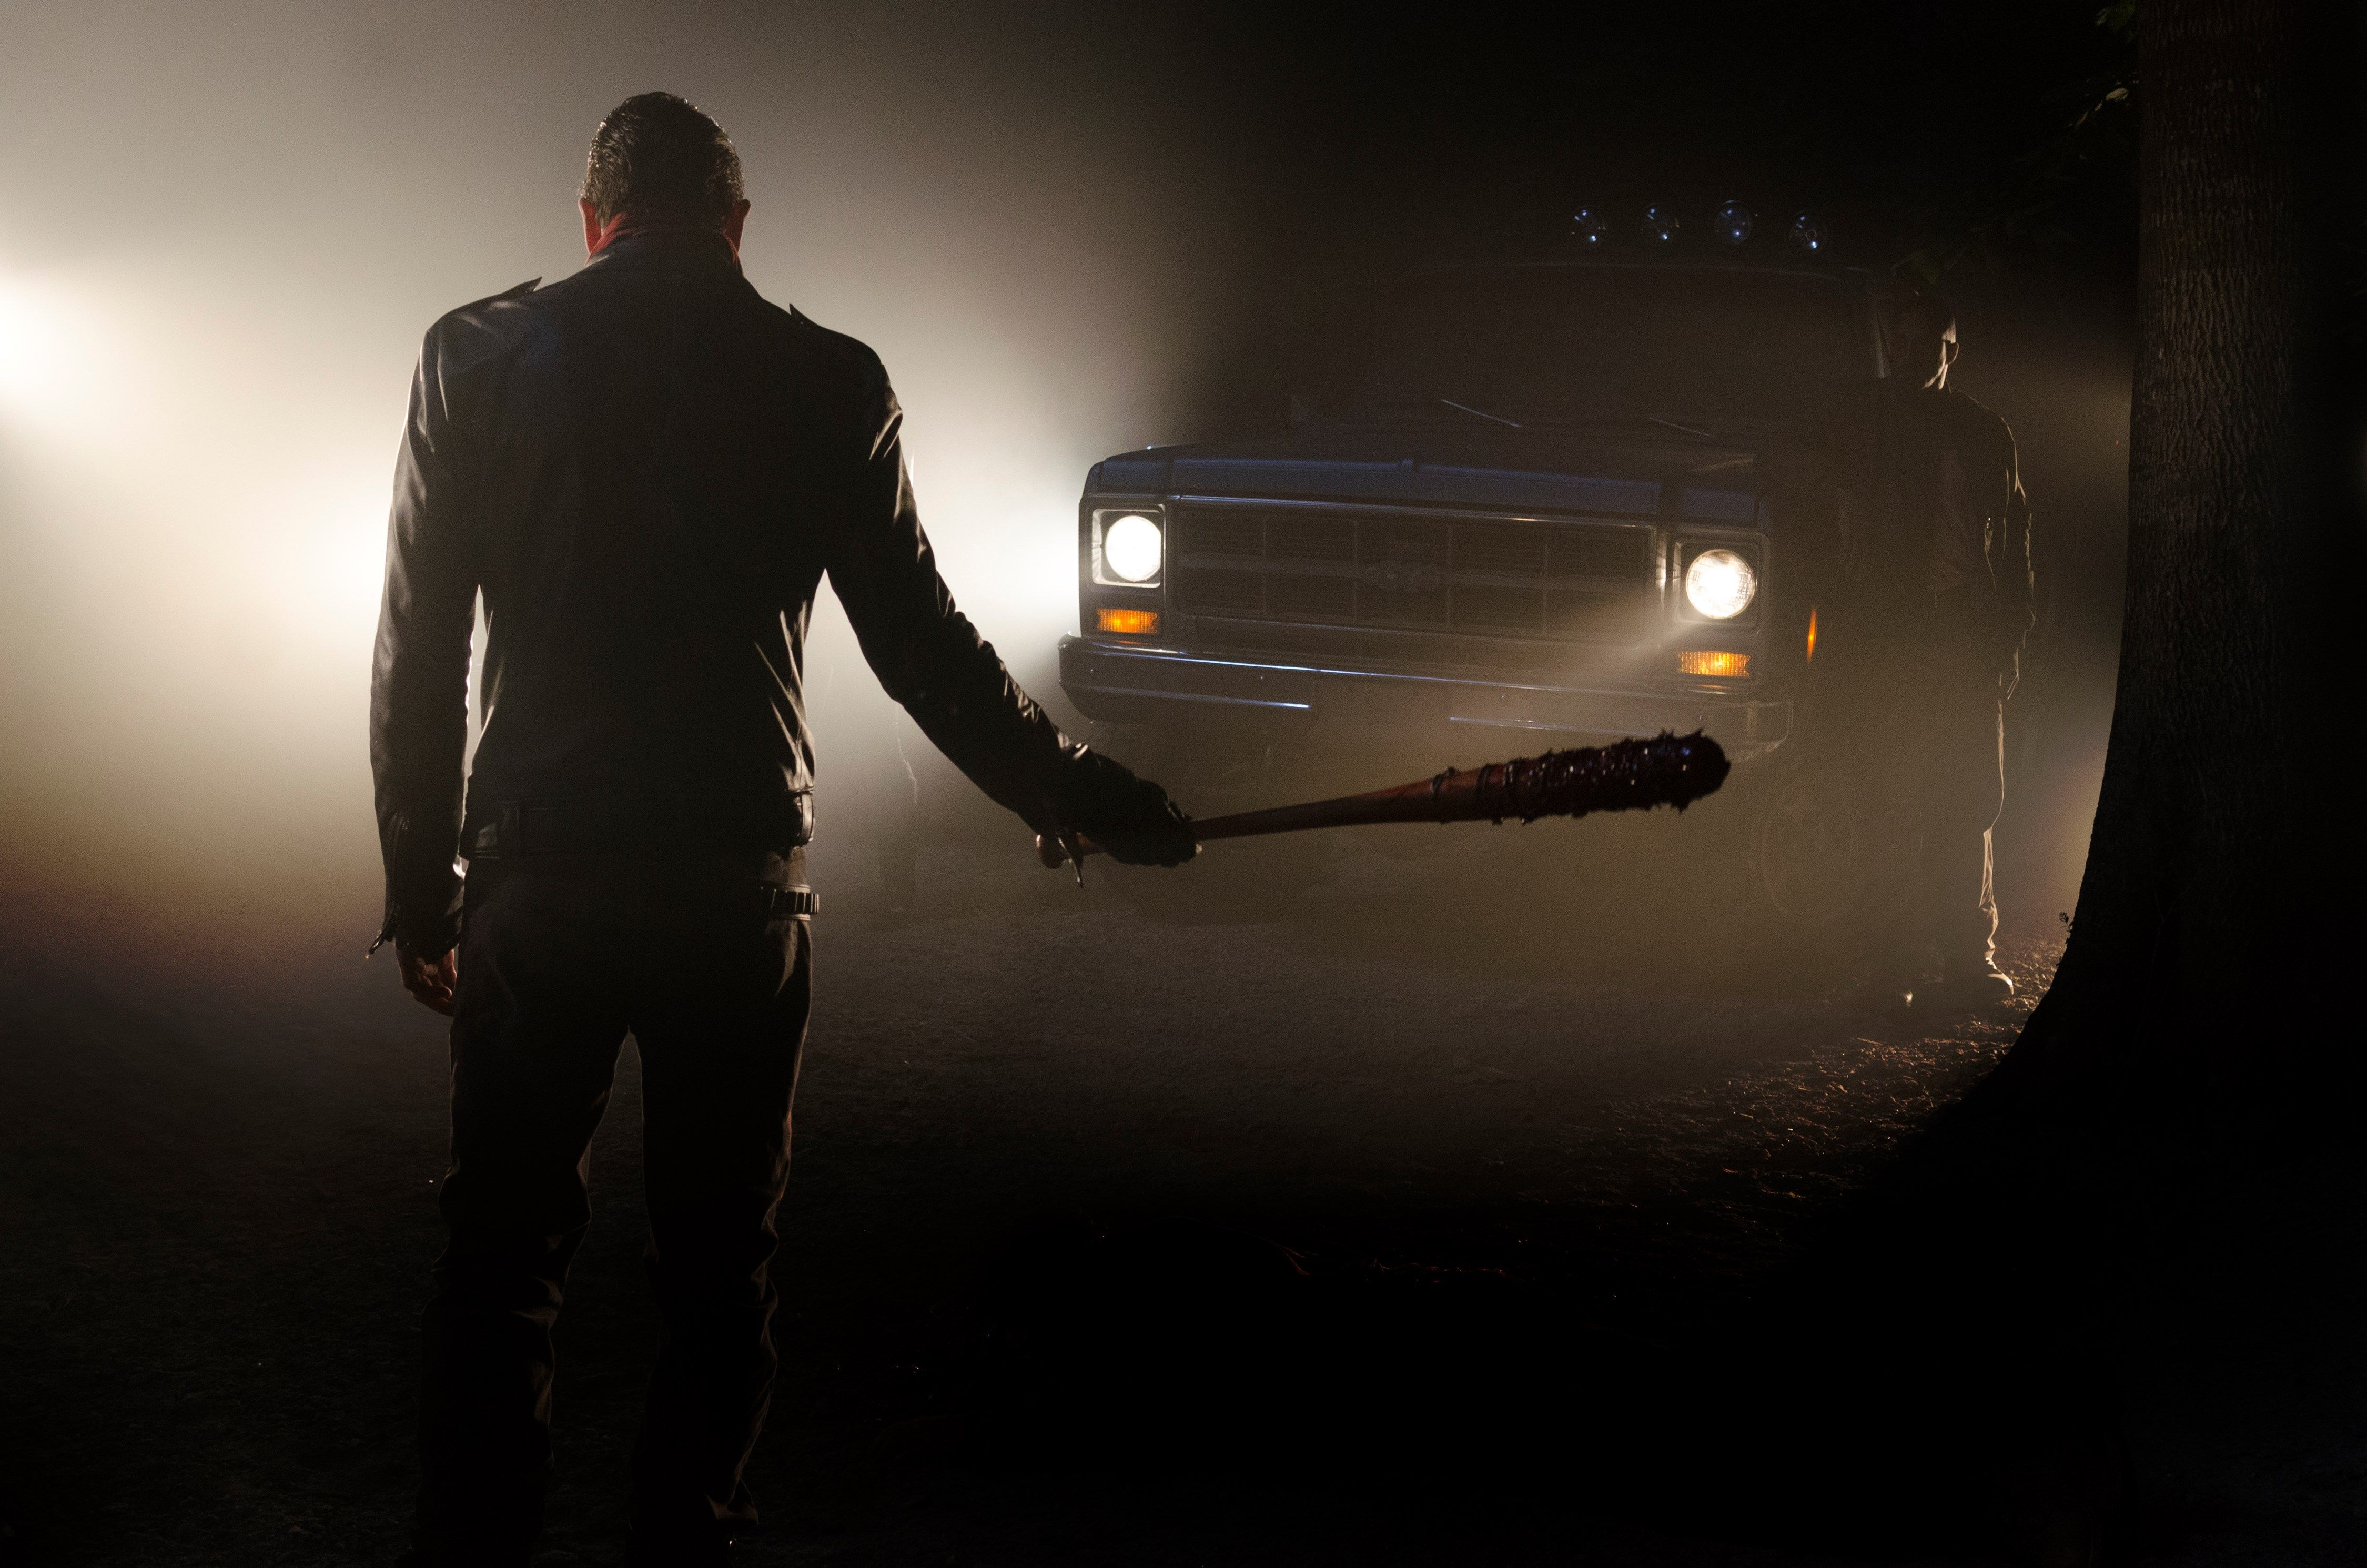 4500x2981 Background In High Quality The Walking Dead Walking Dead Season Walking Dead Premiere Walking Dead Fan